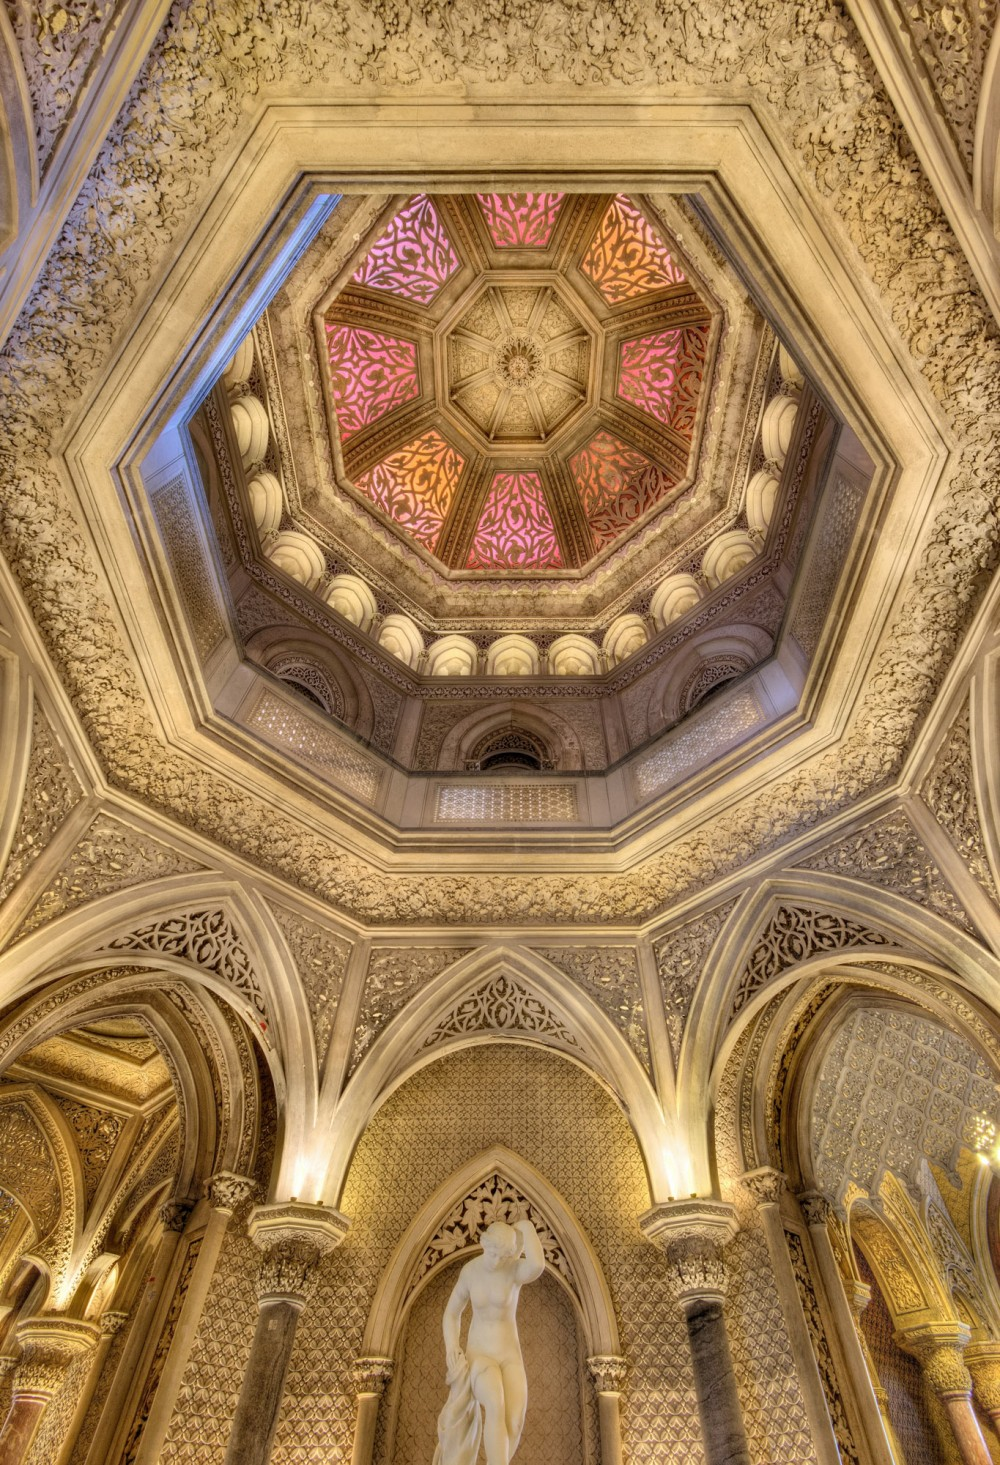 The Palace of Monserrate is delicately decorated in a style that combines Gothic and Indian influences with Moorish touches. – © PSML / EMIGUS